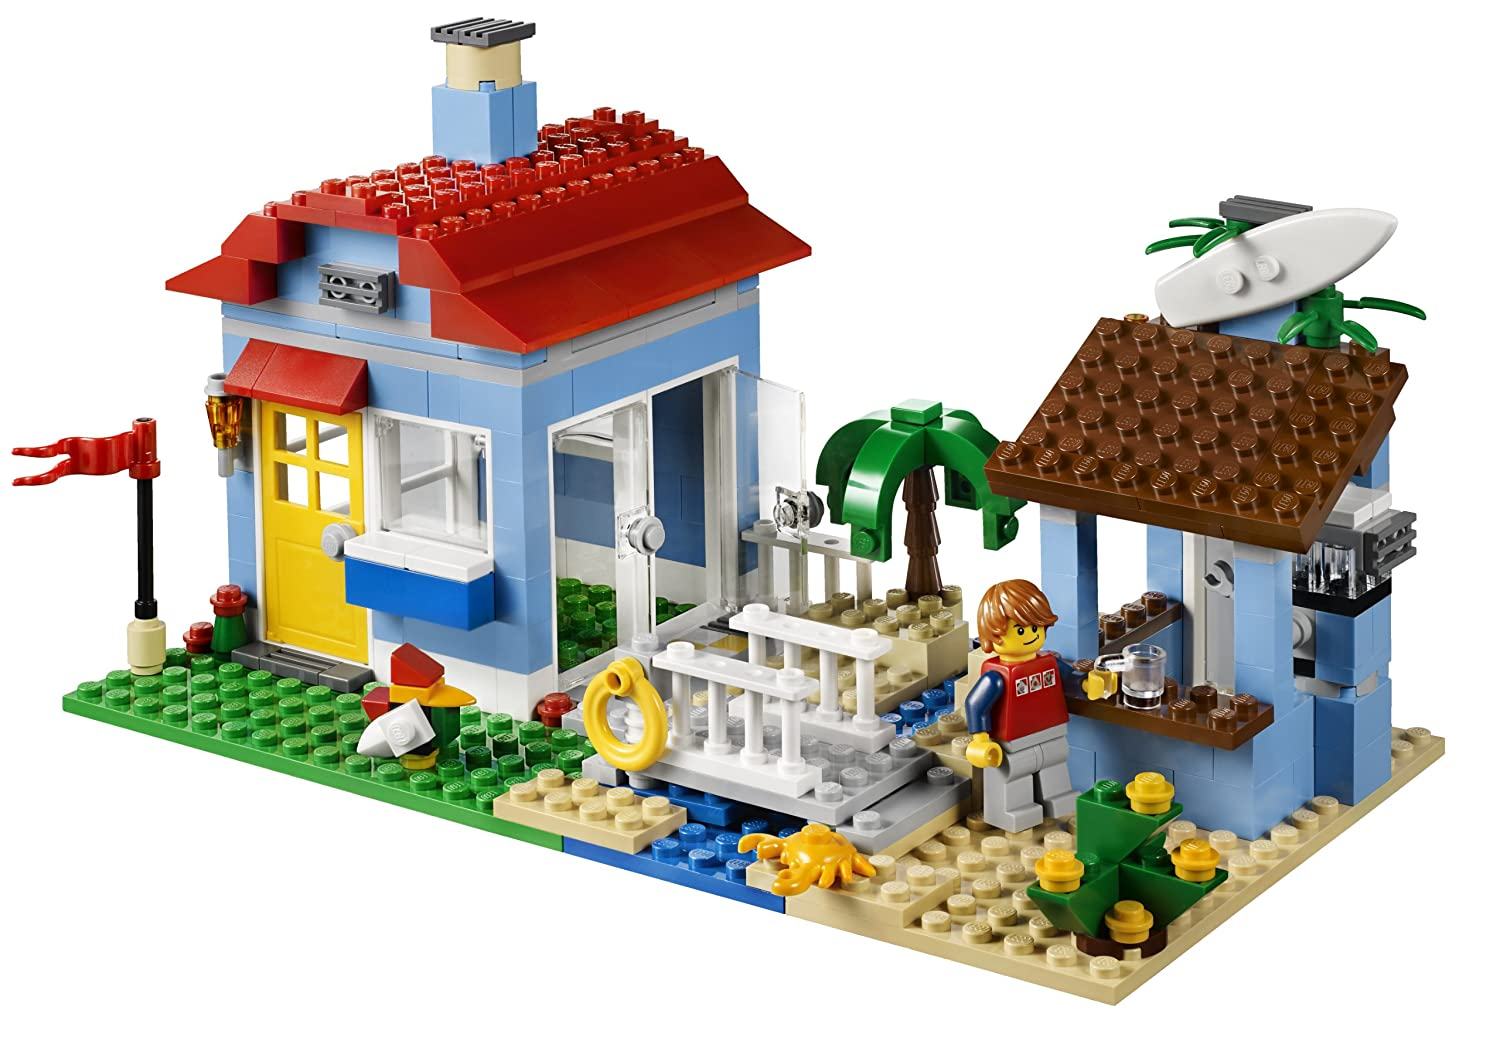 Lego creator house images galleries for Casa amazon